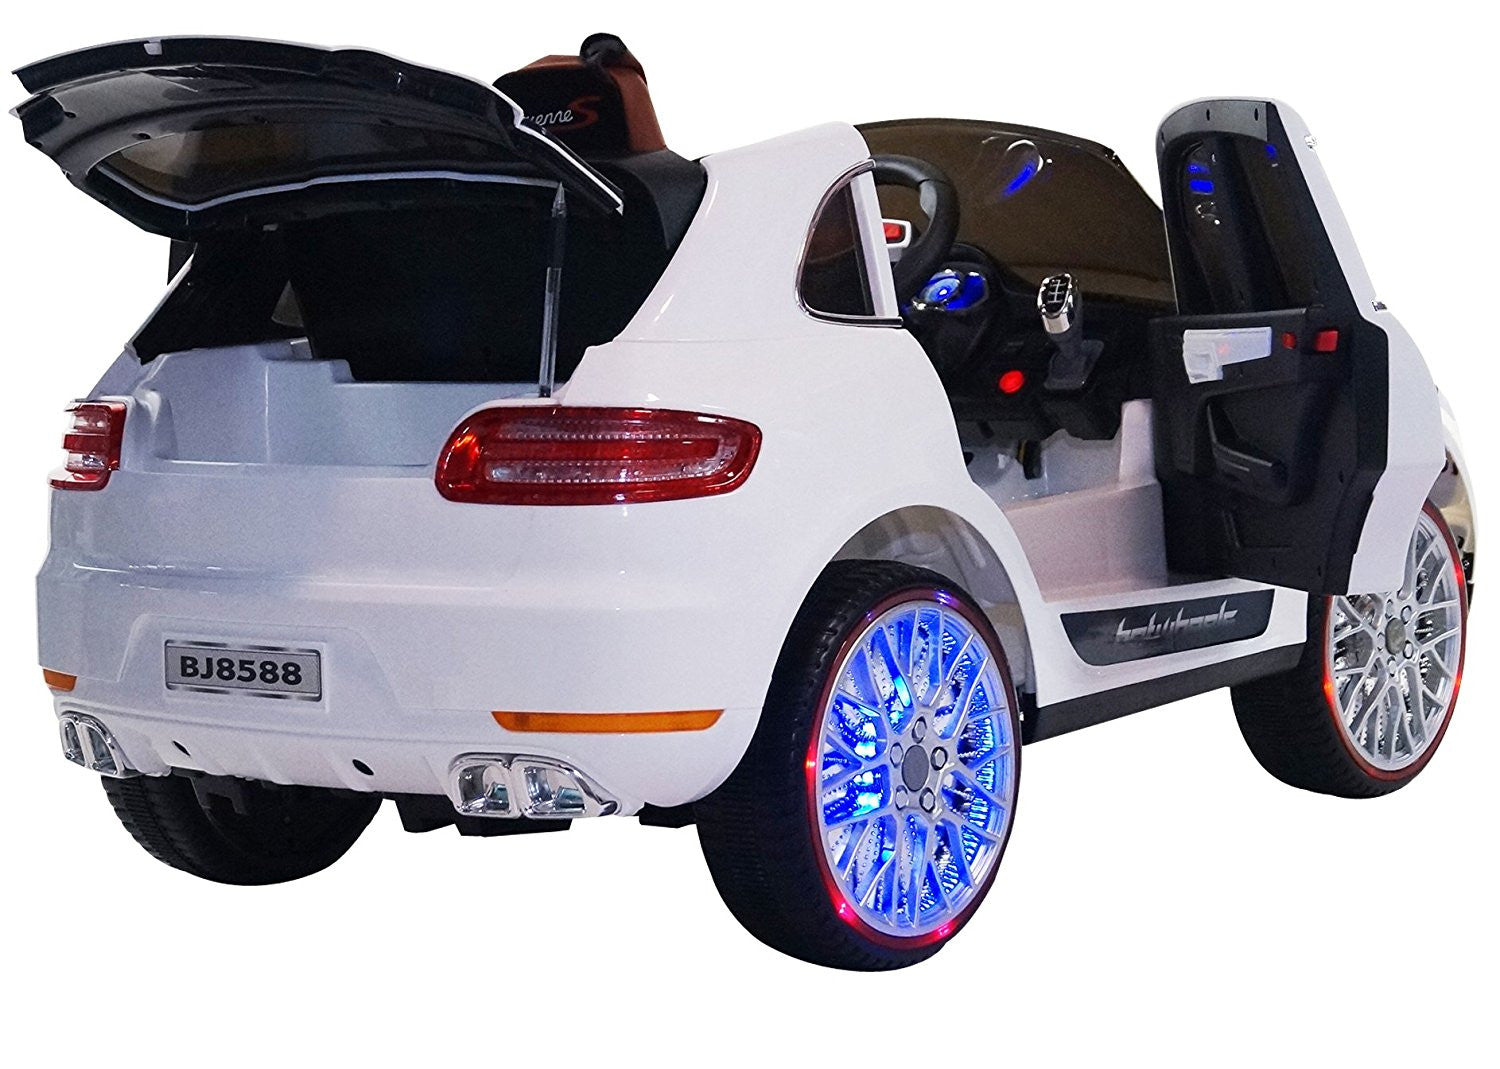 porsche cayenne style premium ride on electric toy car for kids led lights mp3